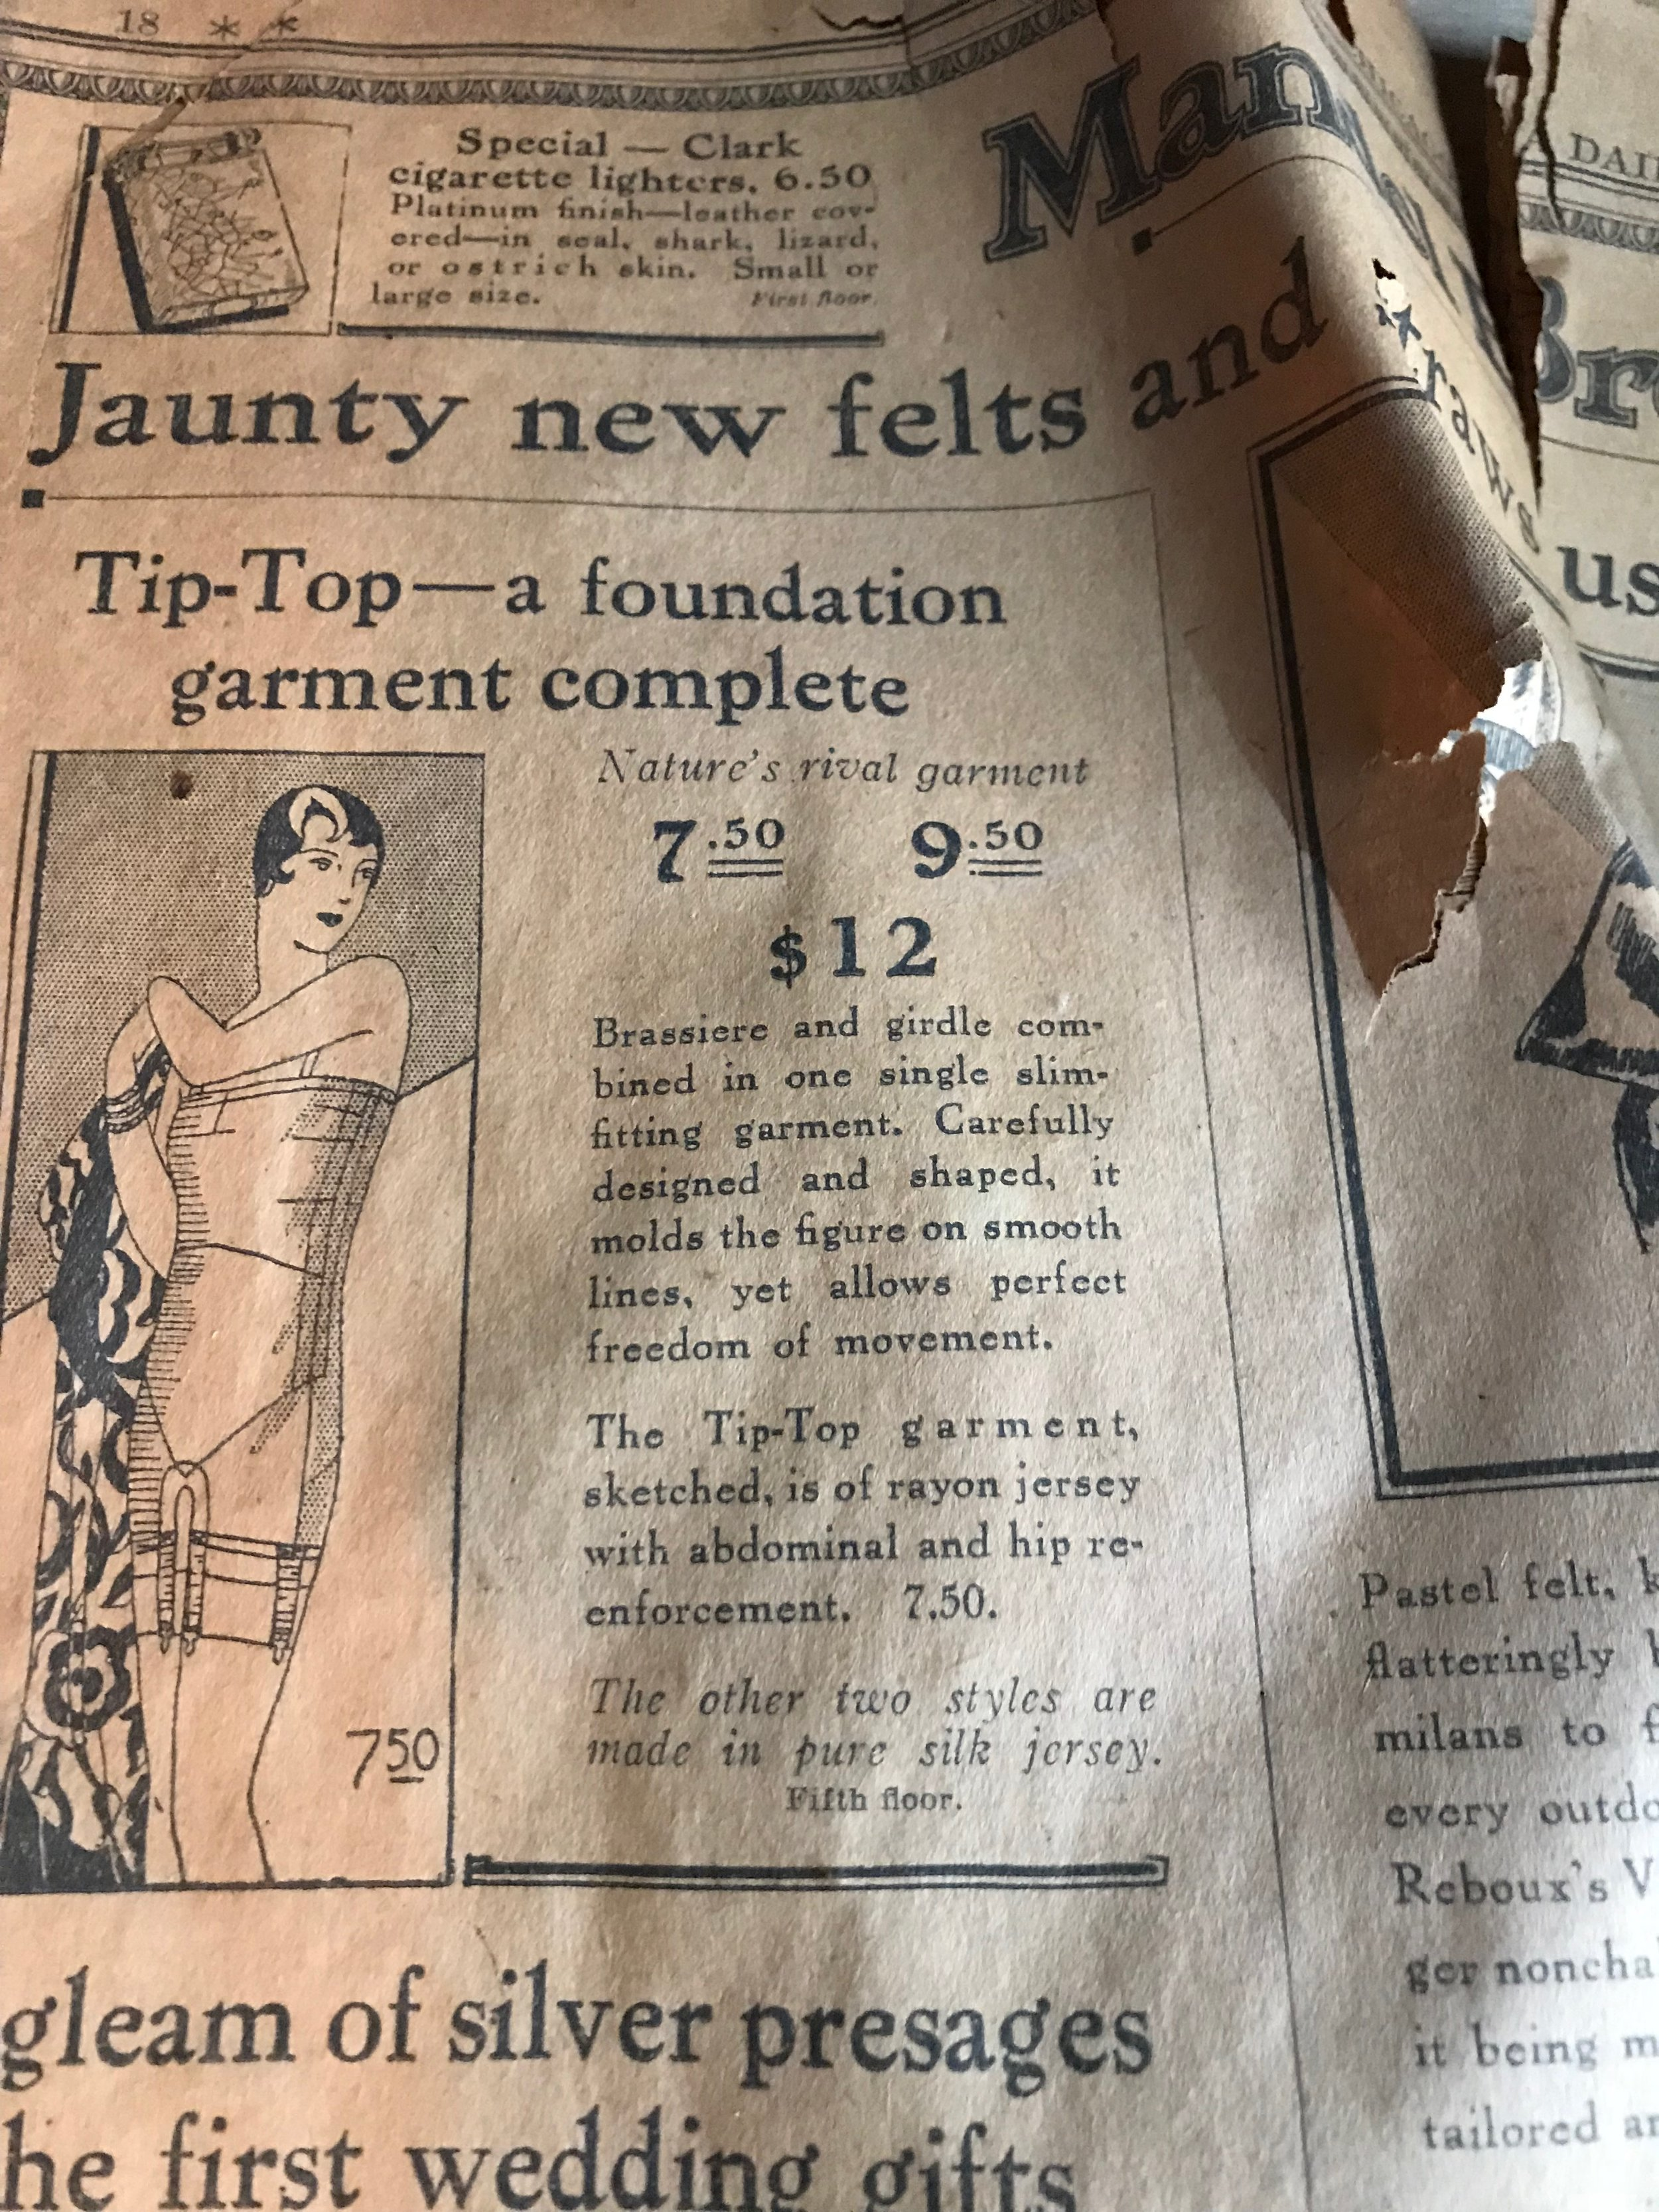 "We found sheets of old newspaper Inside the walls of this renovation project, including this Chicago Daily Tribune advertisement from 1927 for jaunty new felts. Suffice to say that the house was not ""Tip-Top"" when we started."